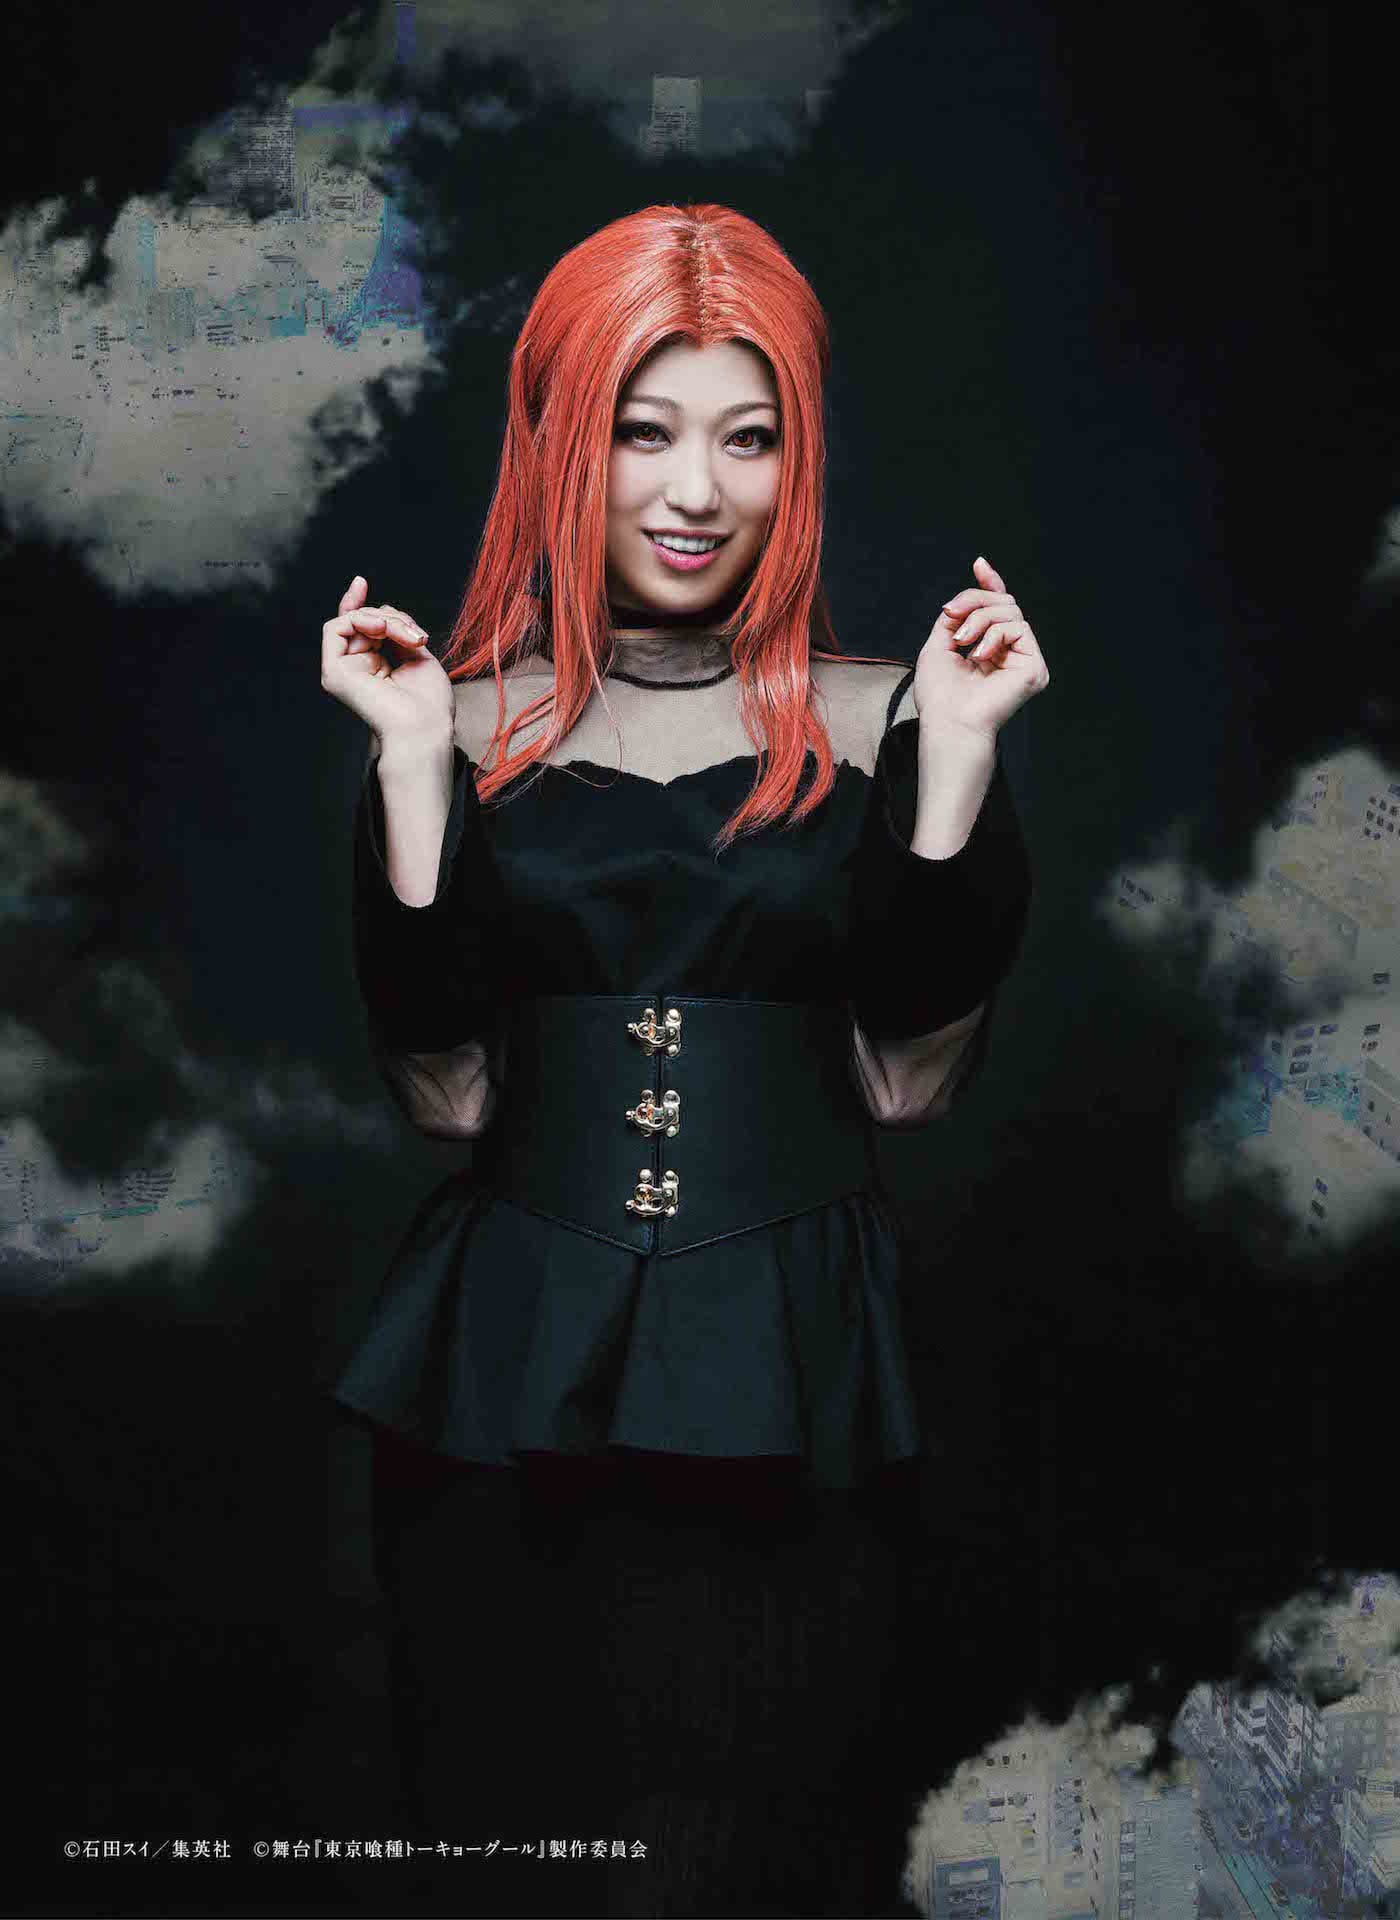 'Tokyo Ghoul' Stage Play | Maho Tomita as Itori